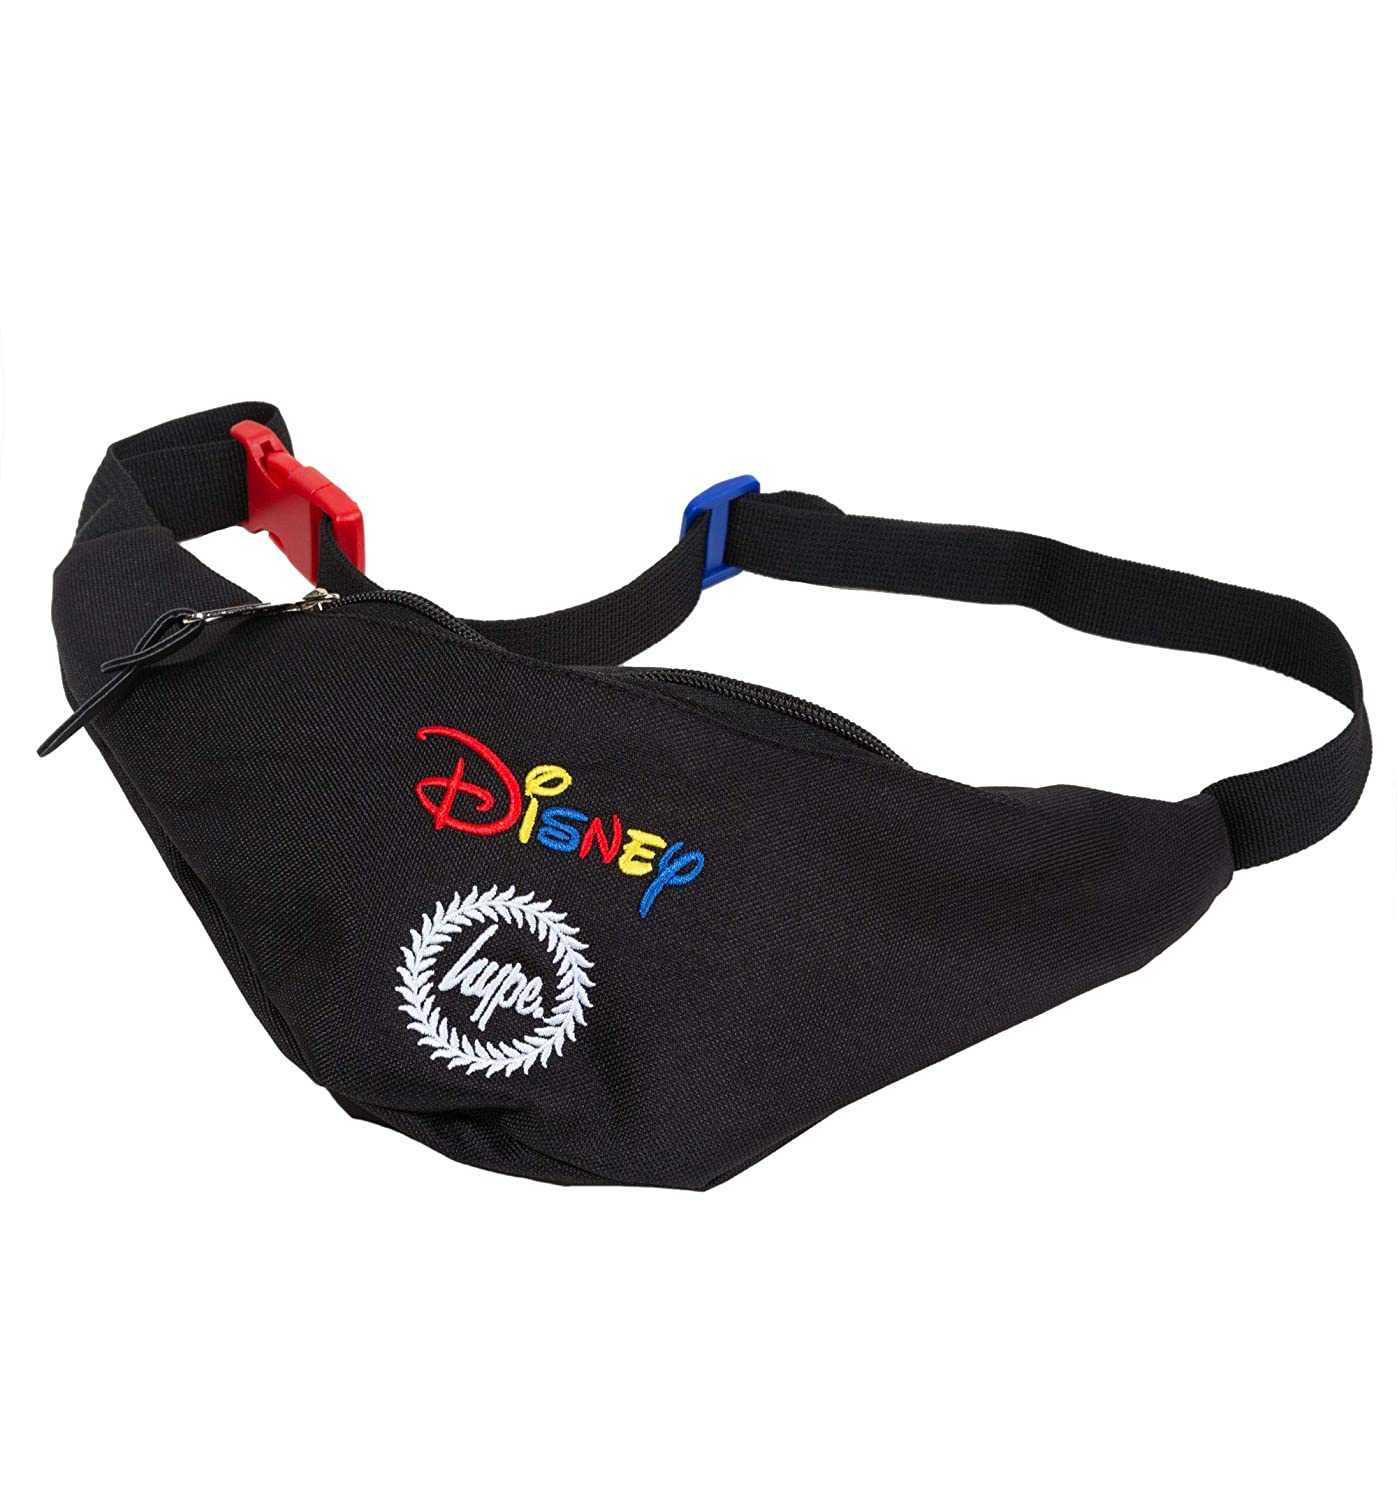 74180dbb5c6 Black Disney Embroidered Logo Bum Bag from Hype  Amazon.co.uk  Luggage